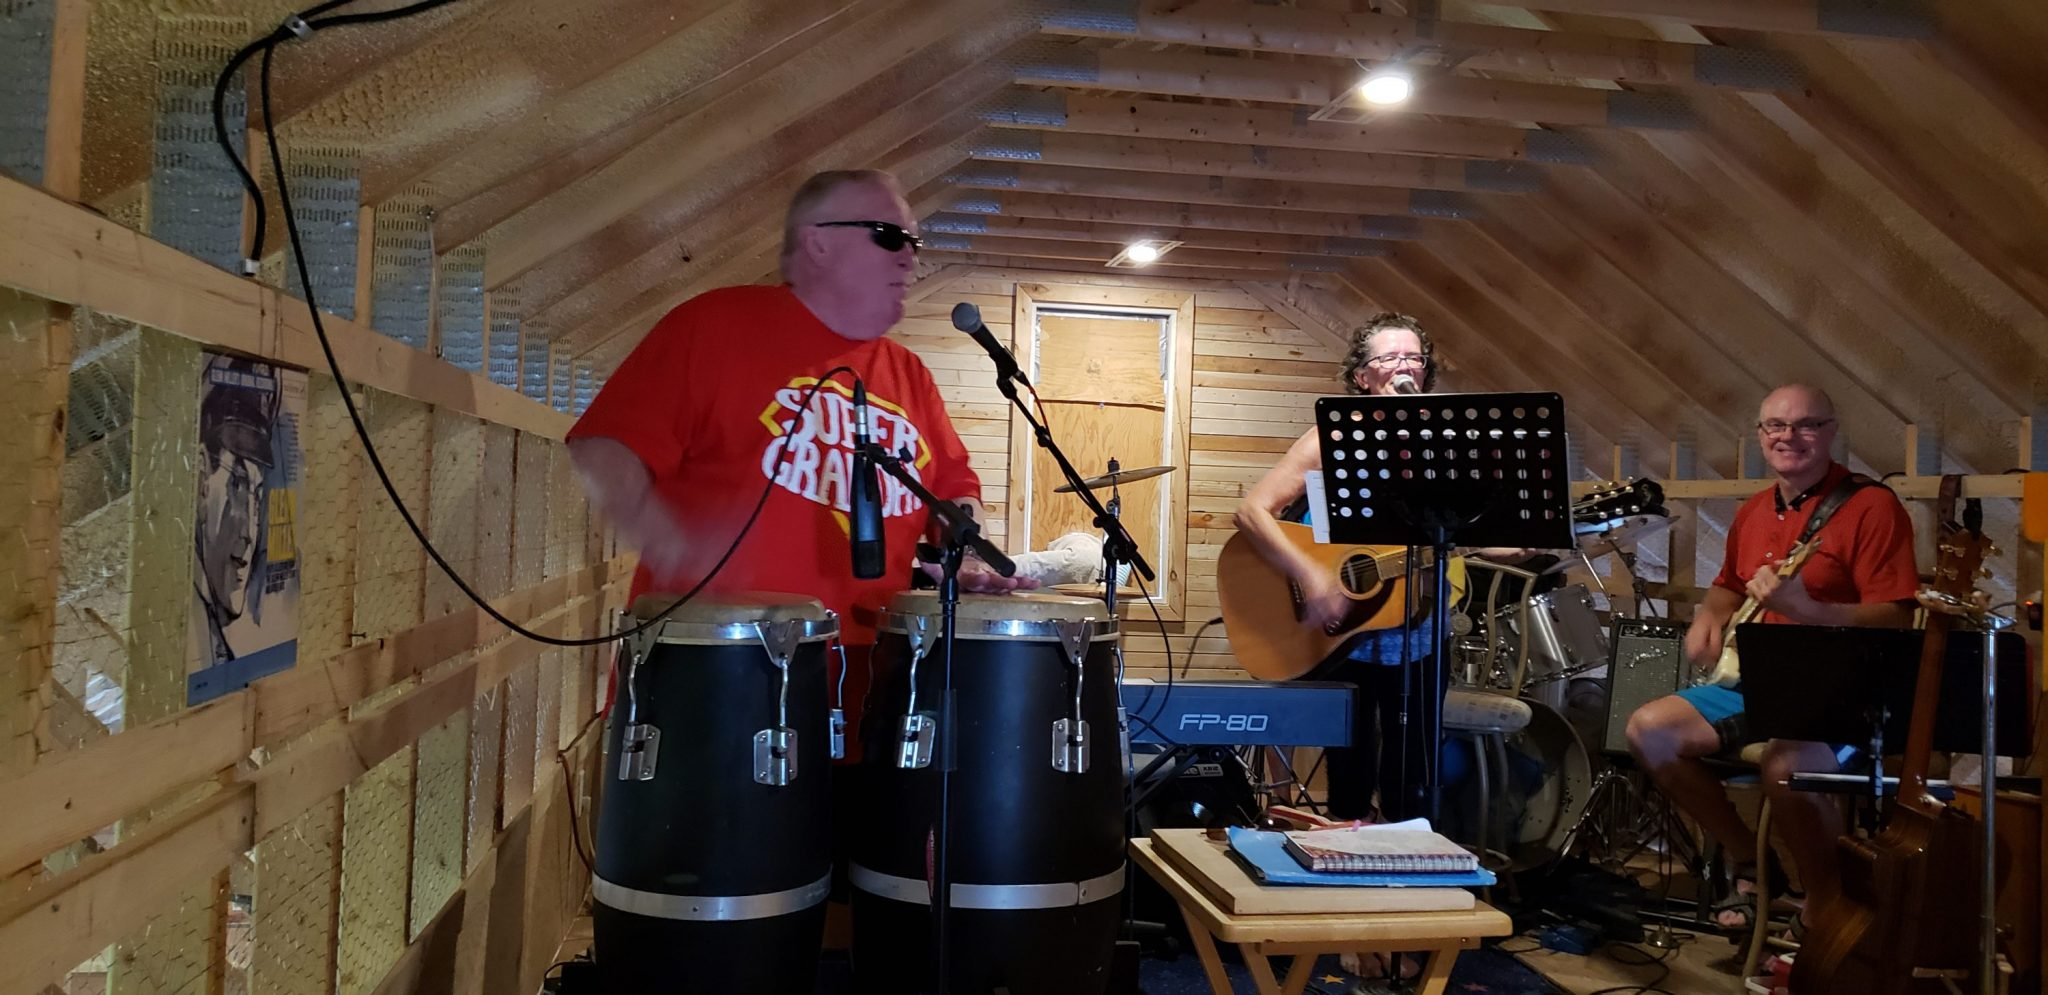 Dave Perry plays congas.